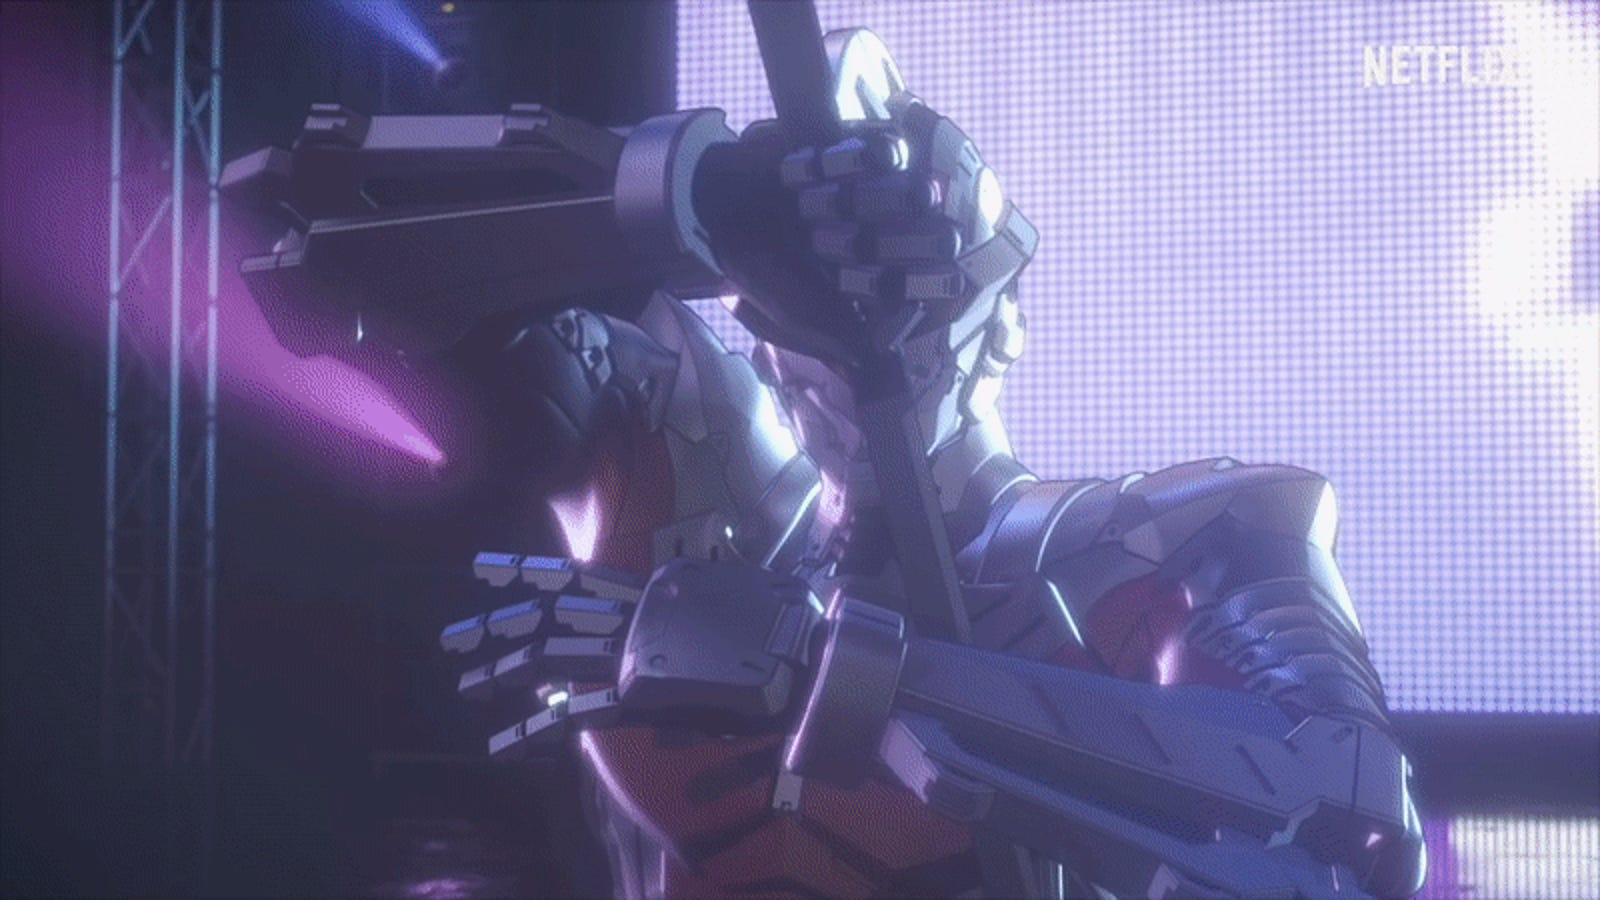 New trailer for netflixs ultraman is full of anime action